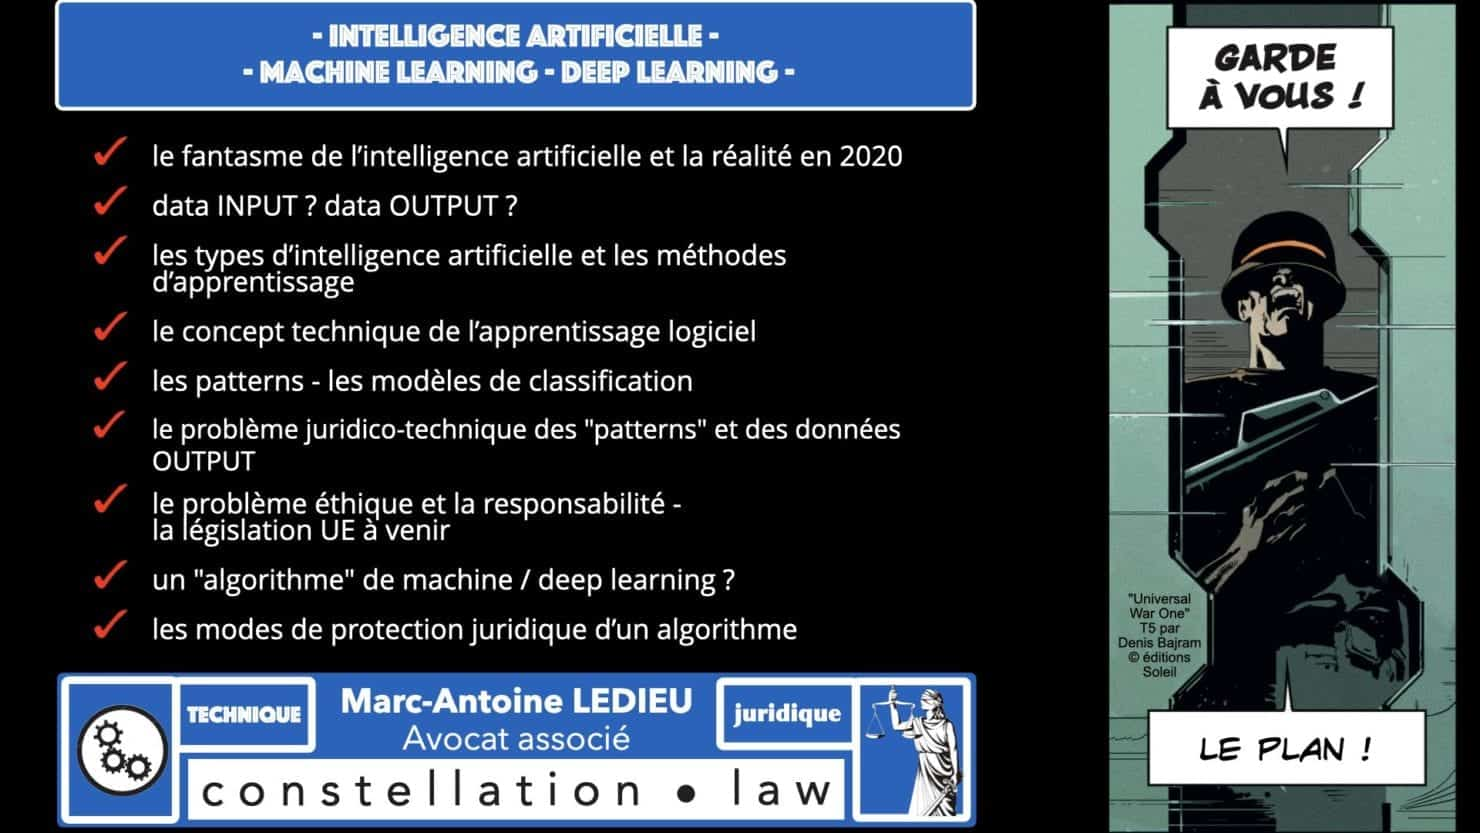 intelligence artificielle - deep learning - machine learning : comment ça marche ?